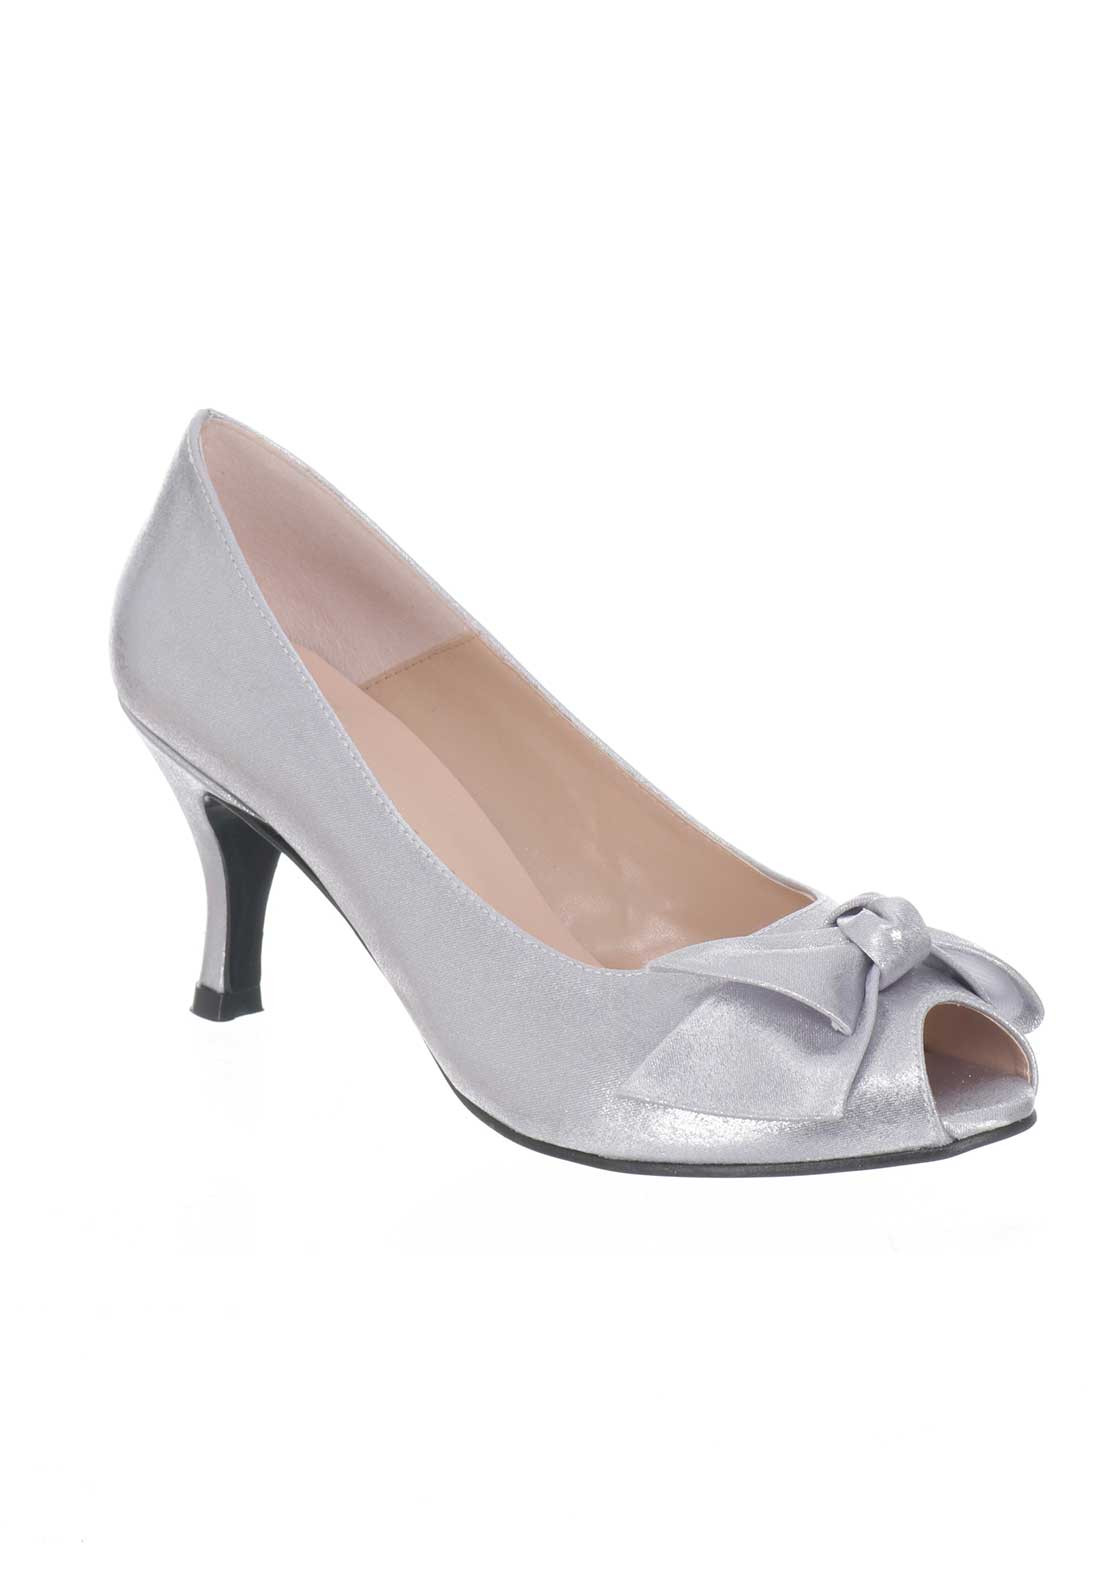 Ana Roman Satin Peep Toe Heeled Shoes, Silver